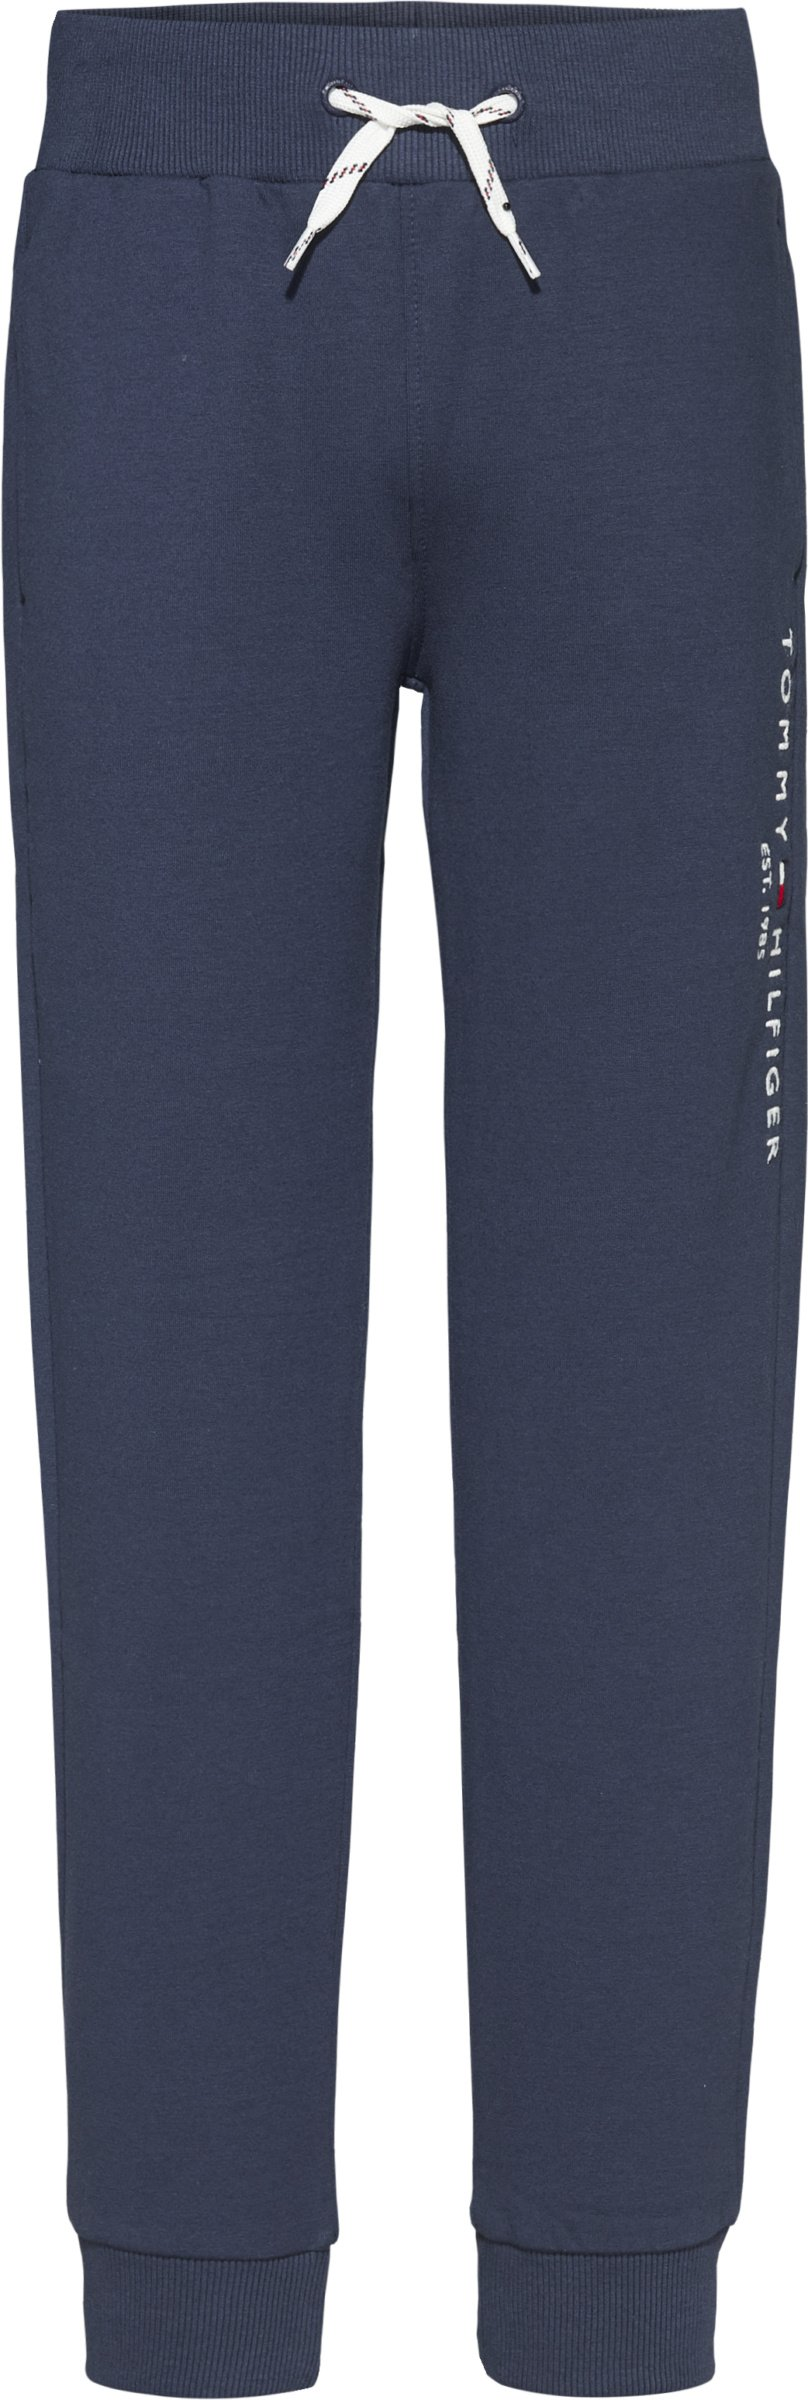 Tommy Hilfiger, Essential sweatpants collegehousut nuorille